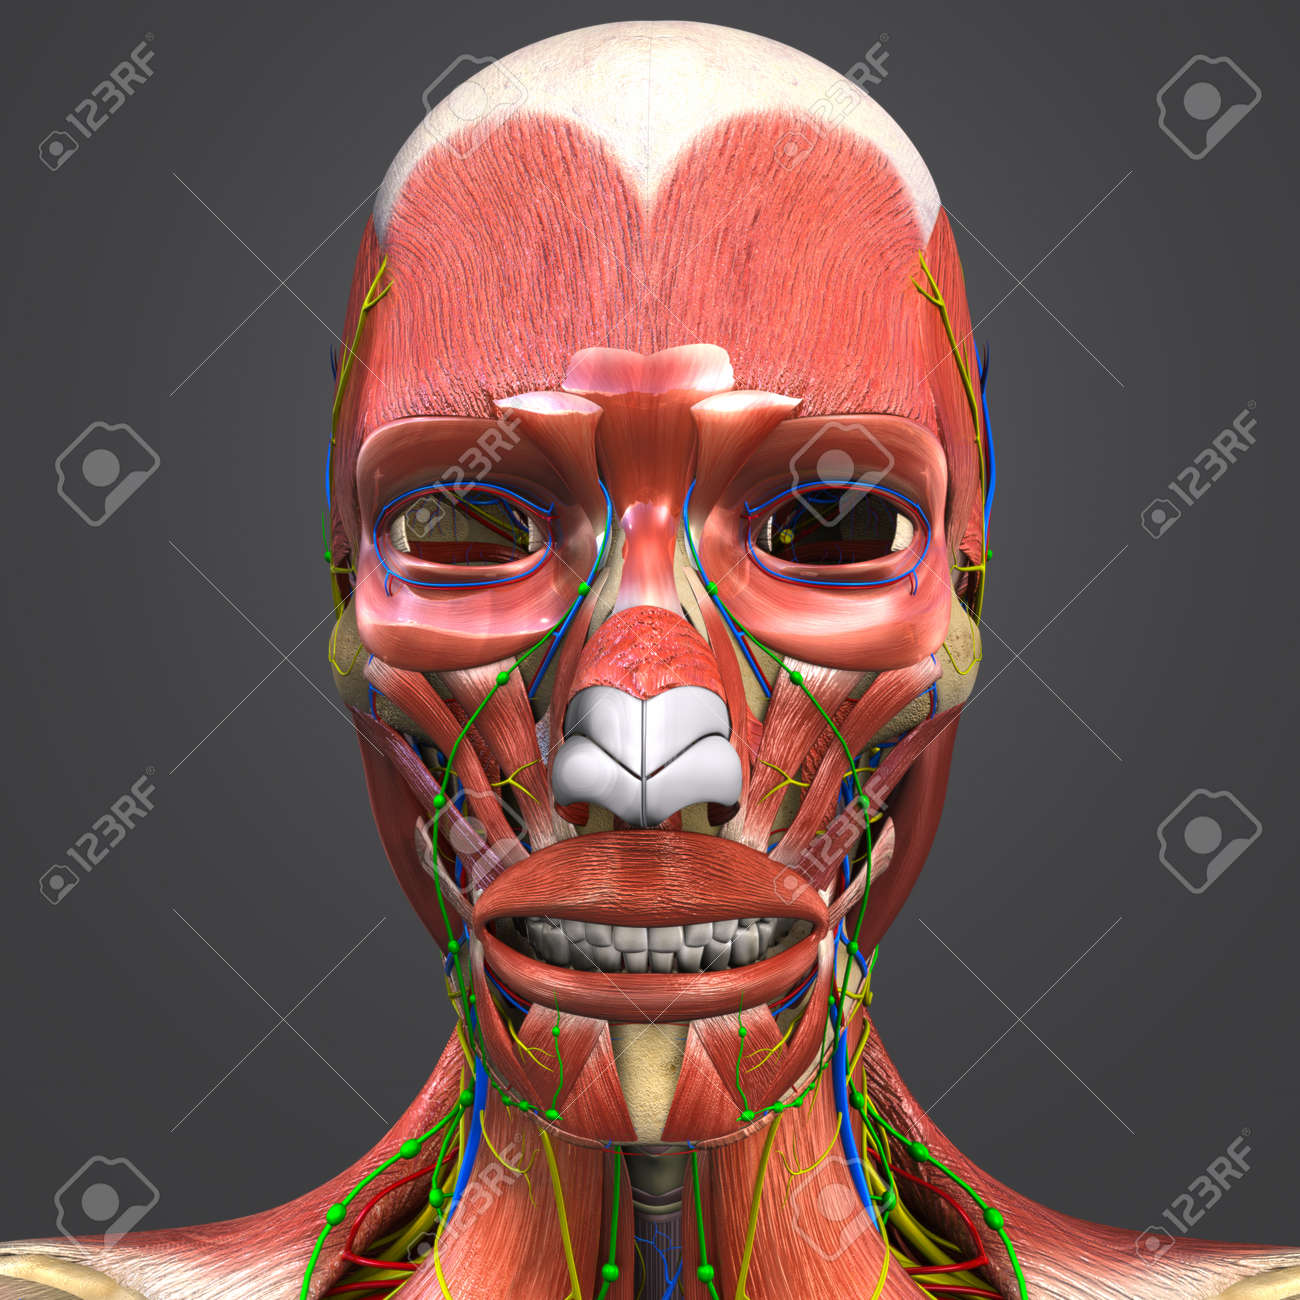 Facial Muscles And Bones With Circulatory System Nerves And Stock